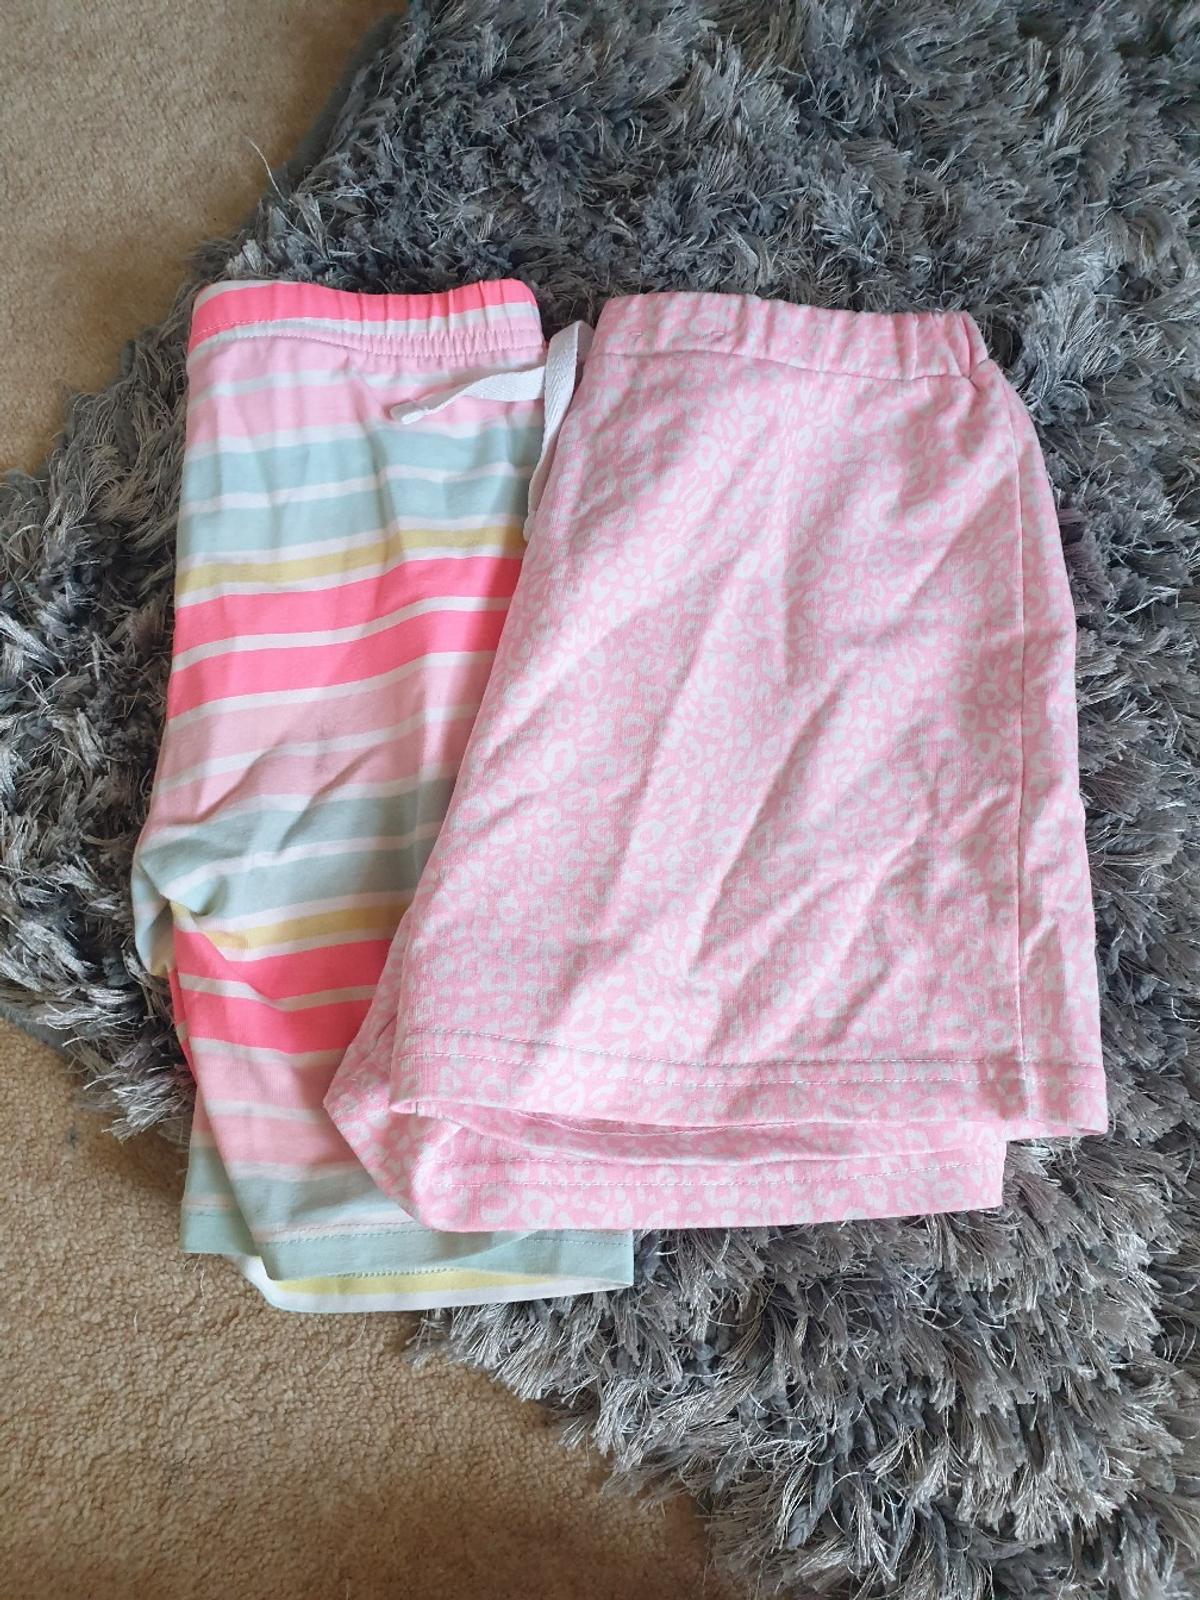 3x tops, 2x shorts and 1x skirt all age 8-9.